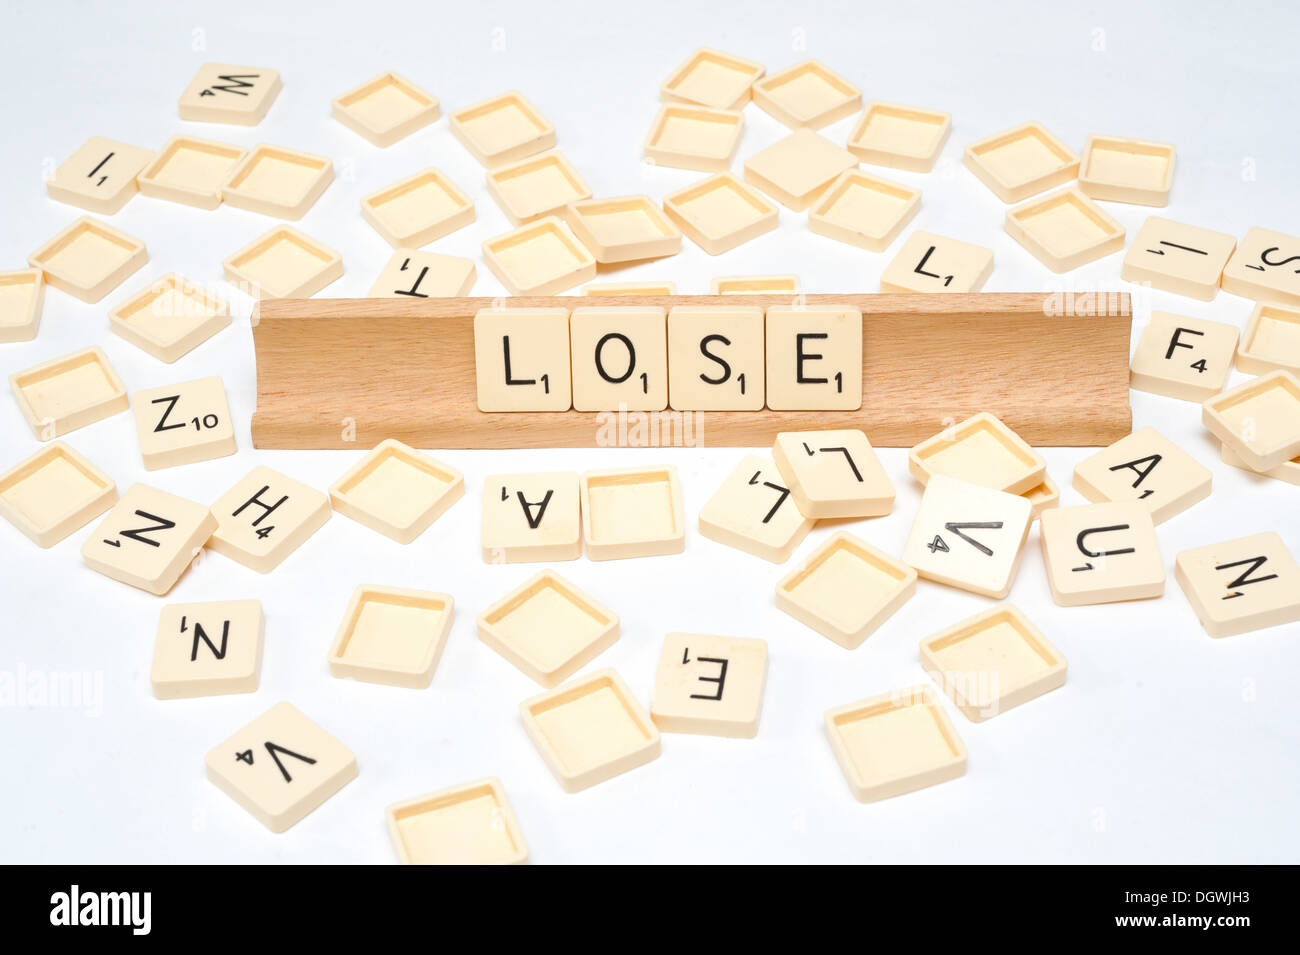 'Lose' written in scrabble tiles - Stock Image